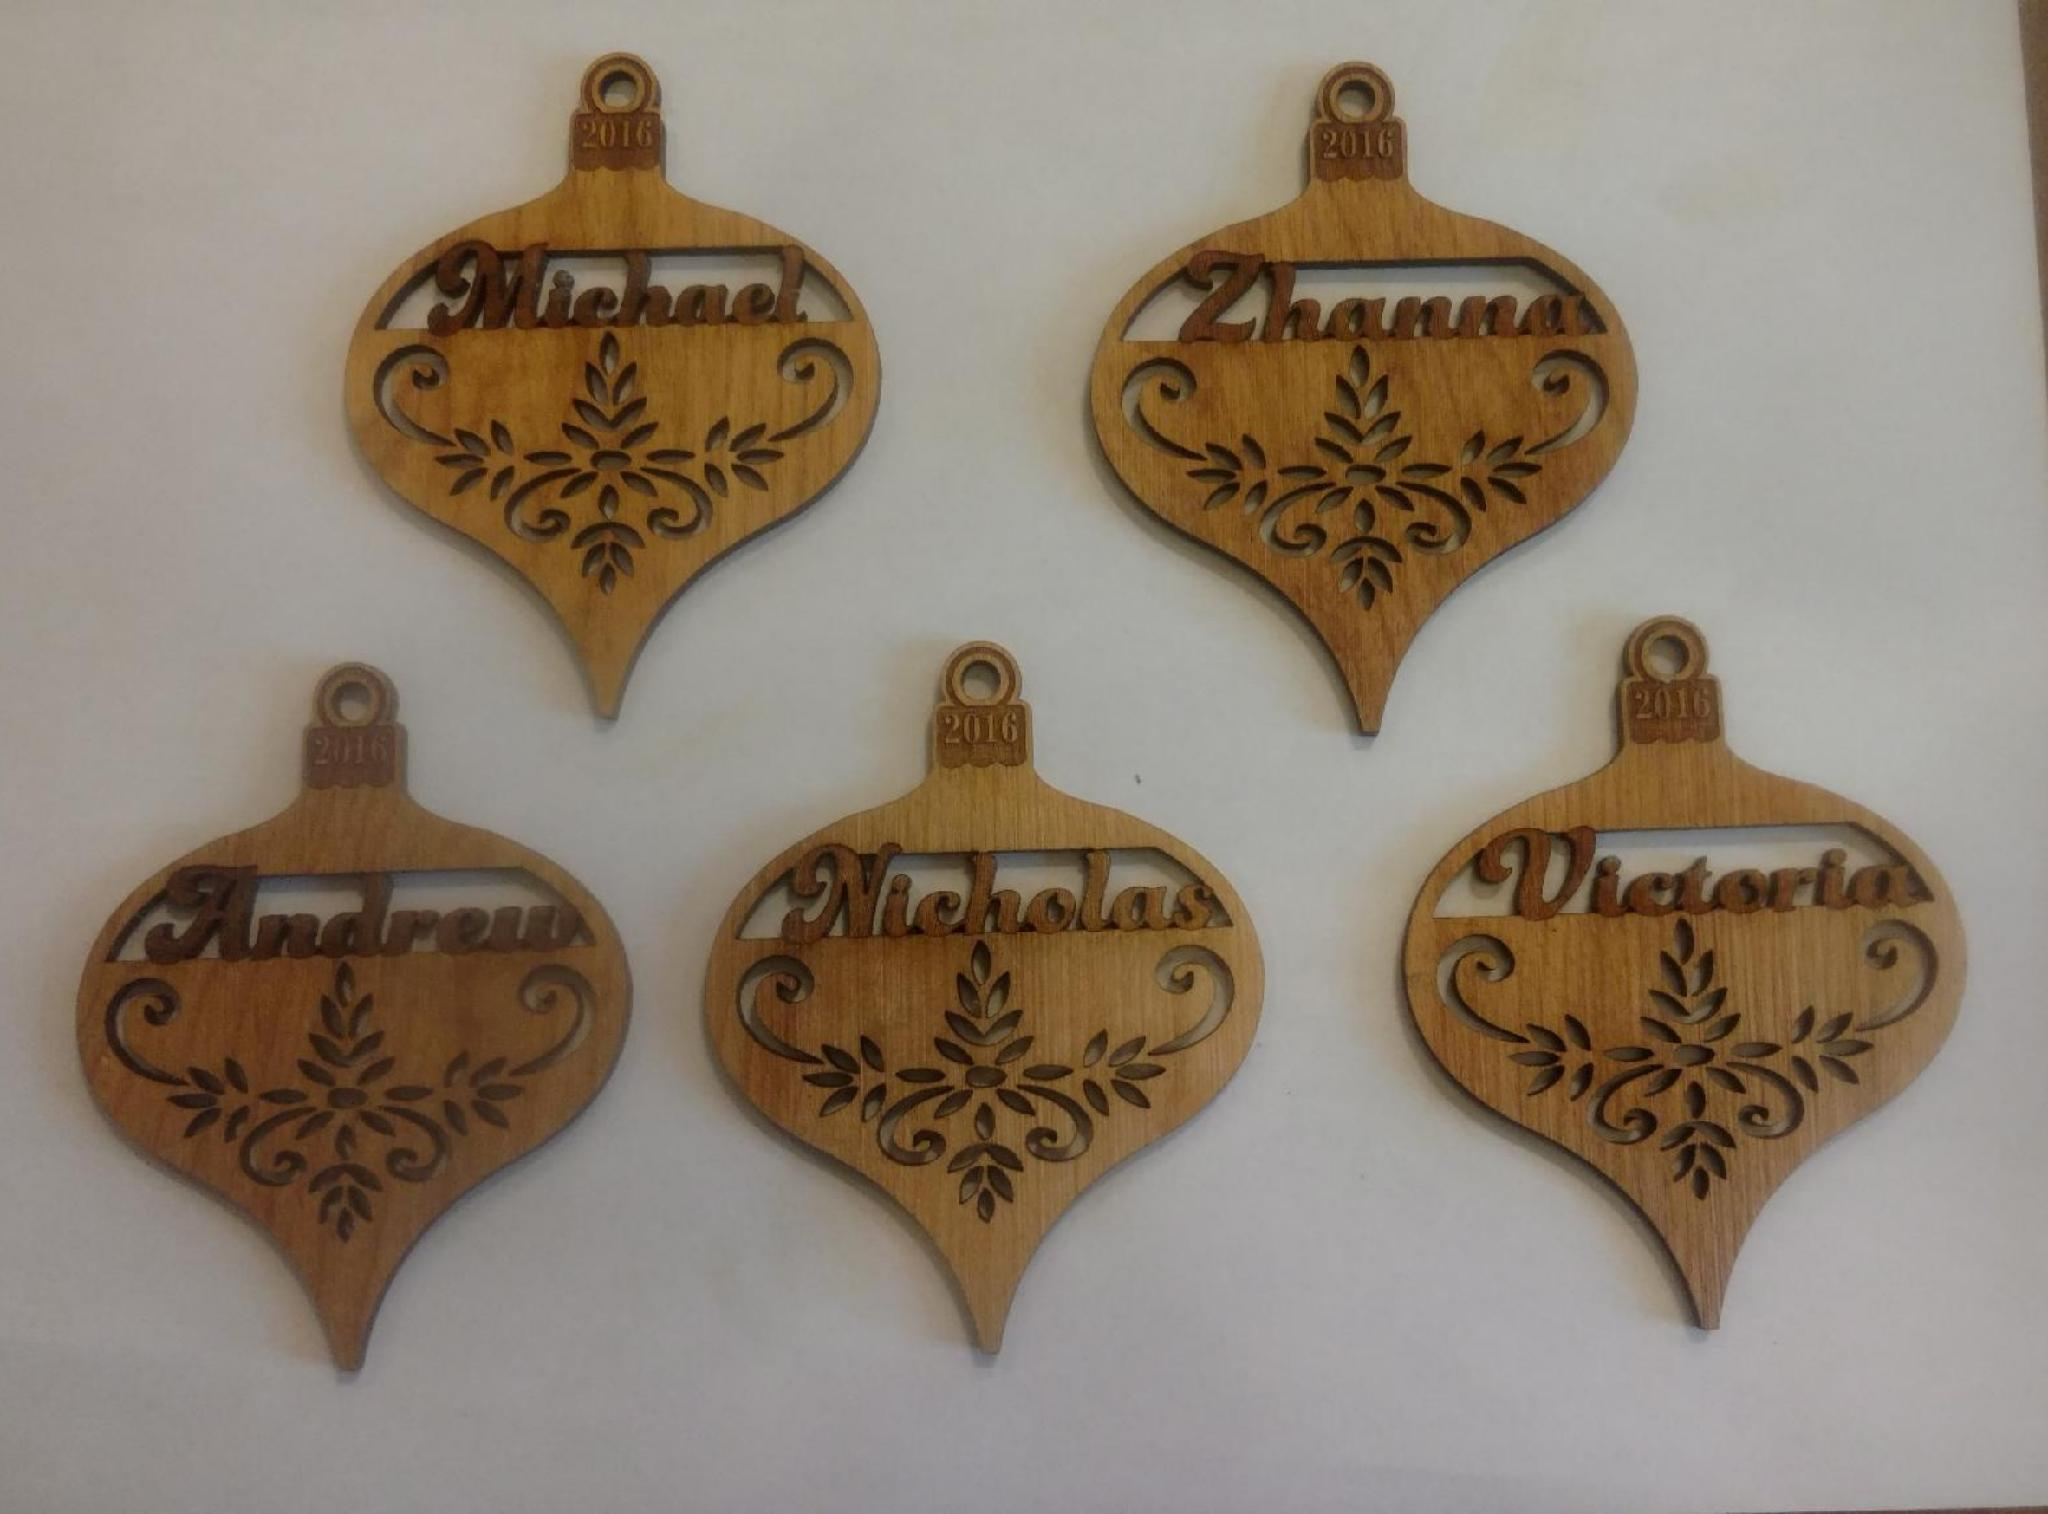 The Christmas ornaments are laser engraved and cut out around the names. There are a couple different designs.